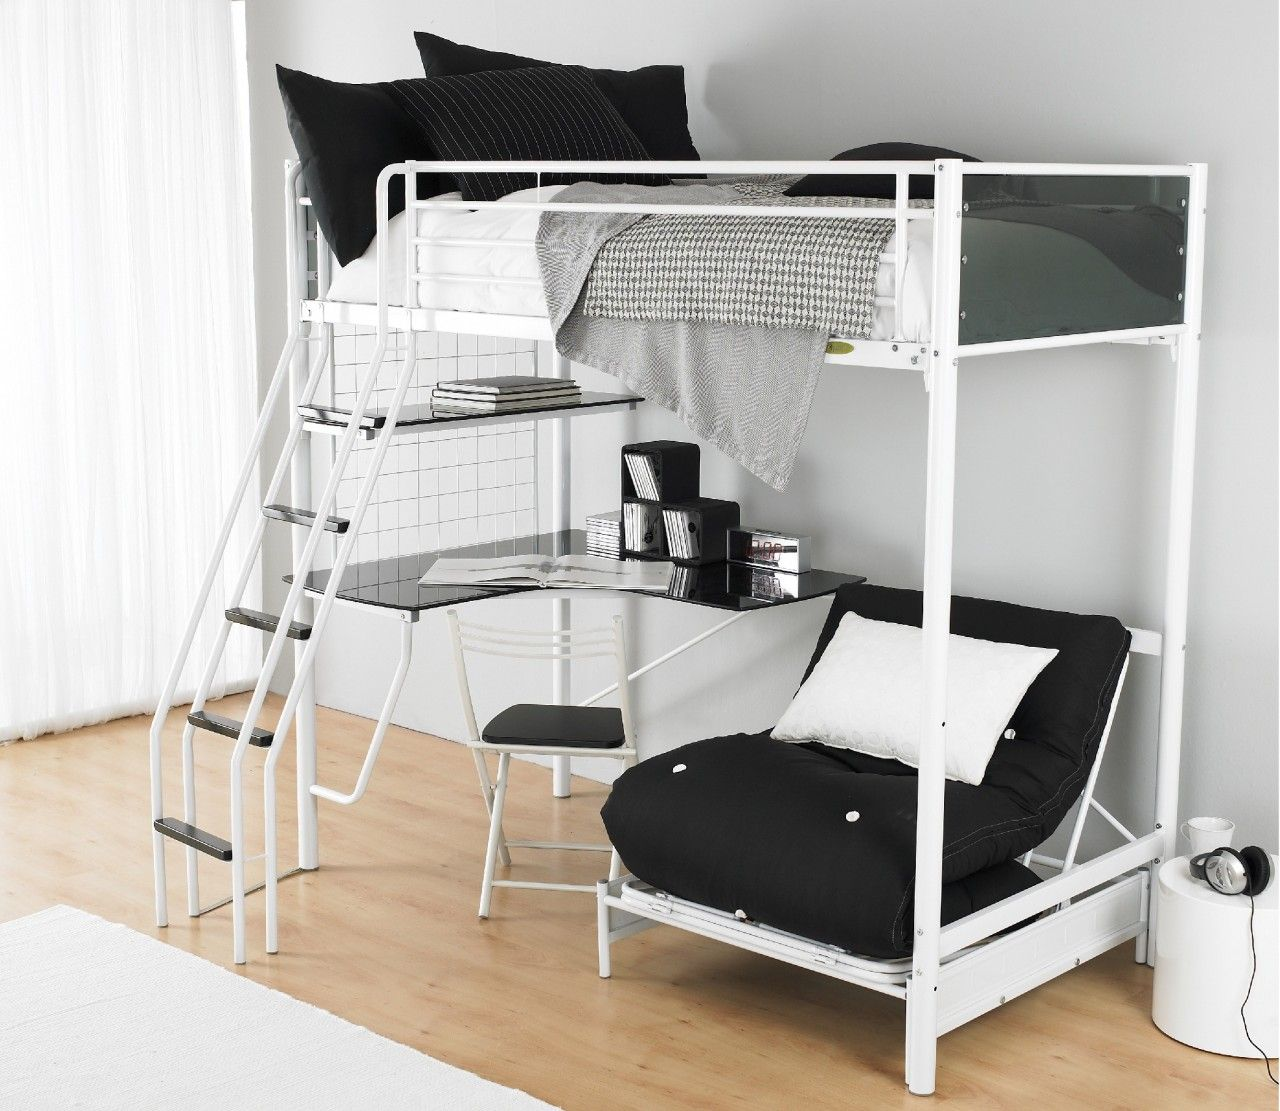 20 Cool Bunk Bed With Desk Designs Loft Beds For Teens Bunk Bed